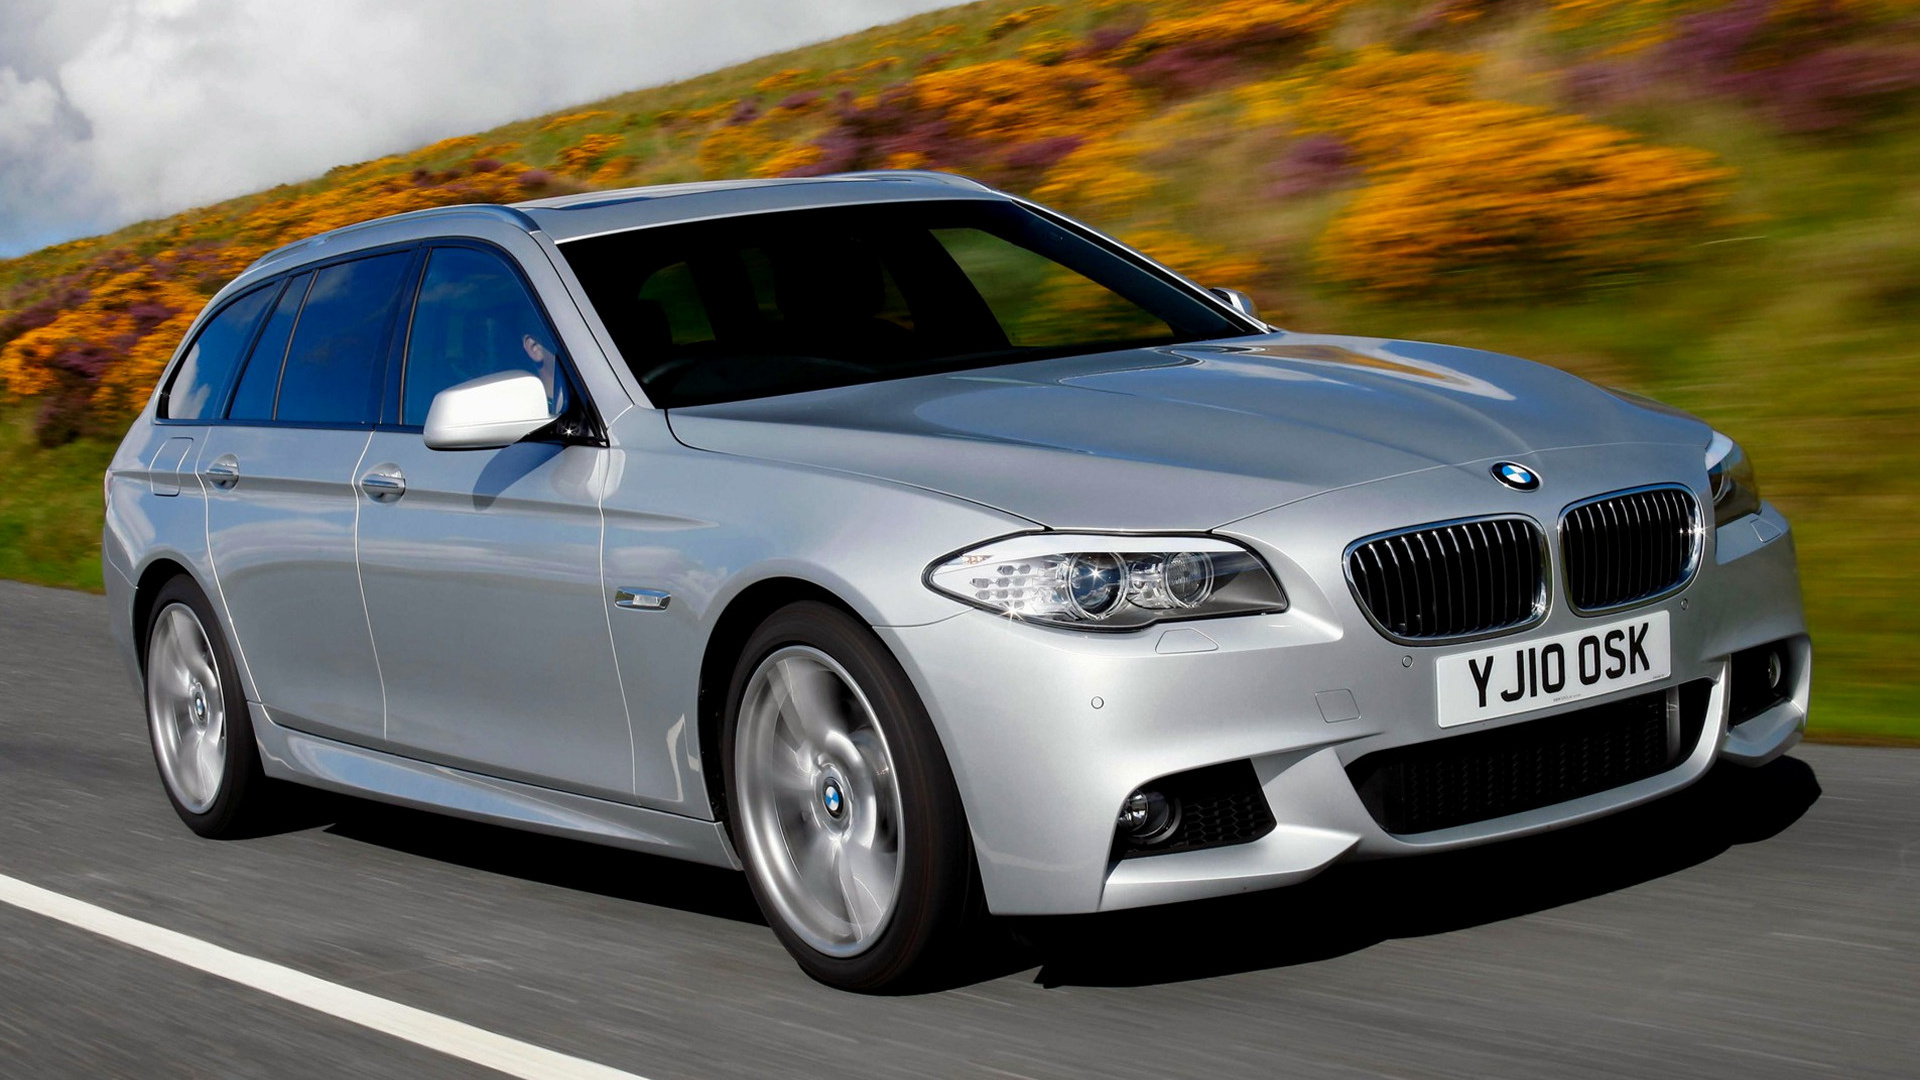 2010 Bmw 5 Series Touring M Sport Uk Wallpapers And Hd Images Car Pixel